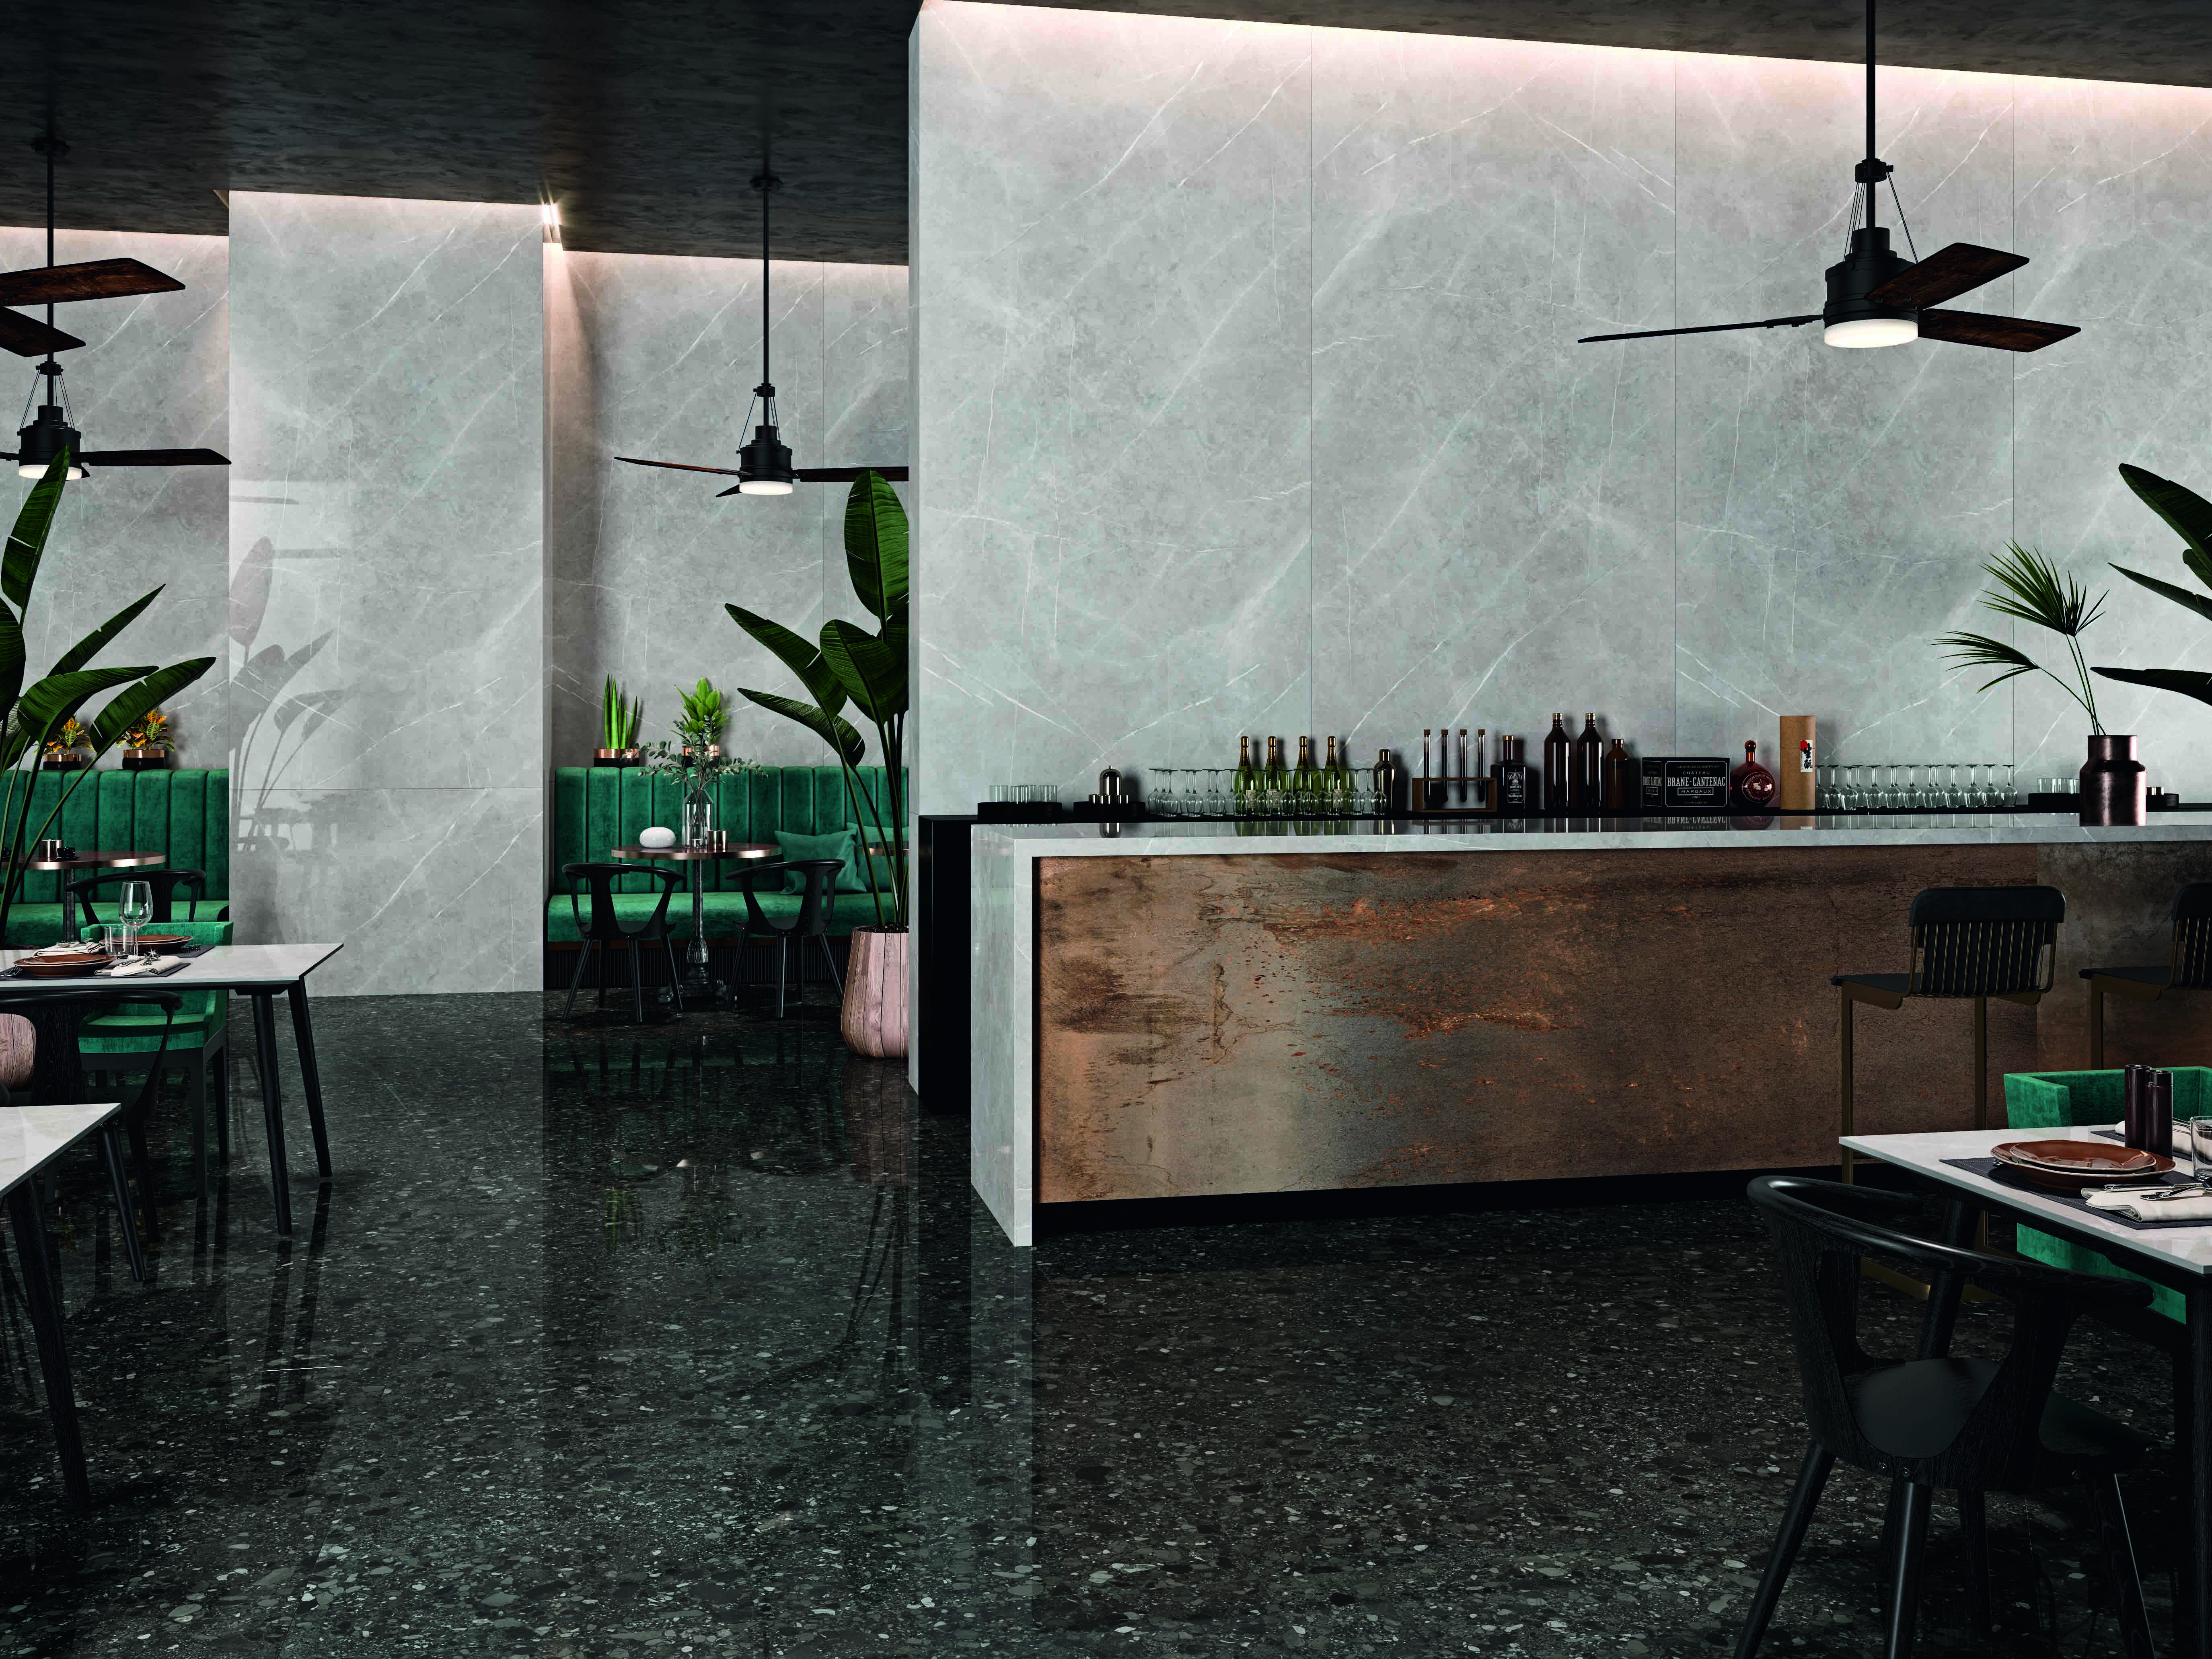 Lending an air of luxury to any setting, the patterned veining of Ceralsio Bianco Silver will draw the eye and create a striking impression, making it perfect for areas of the kitchen such as an island unit where it will be a focal point.  #luxurykitchen #luxurykitchendesigns #marbleeffect #ceramickitchen #kitchendesign #kitchenisland #kitchenislandideas #kitchenislanddecor #countertops #countertopideas